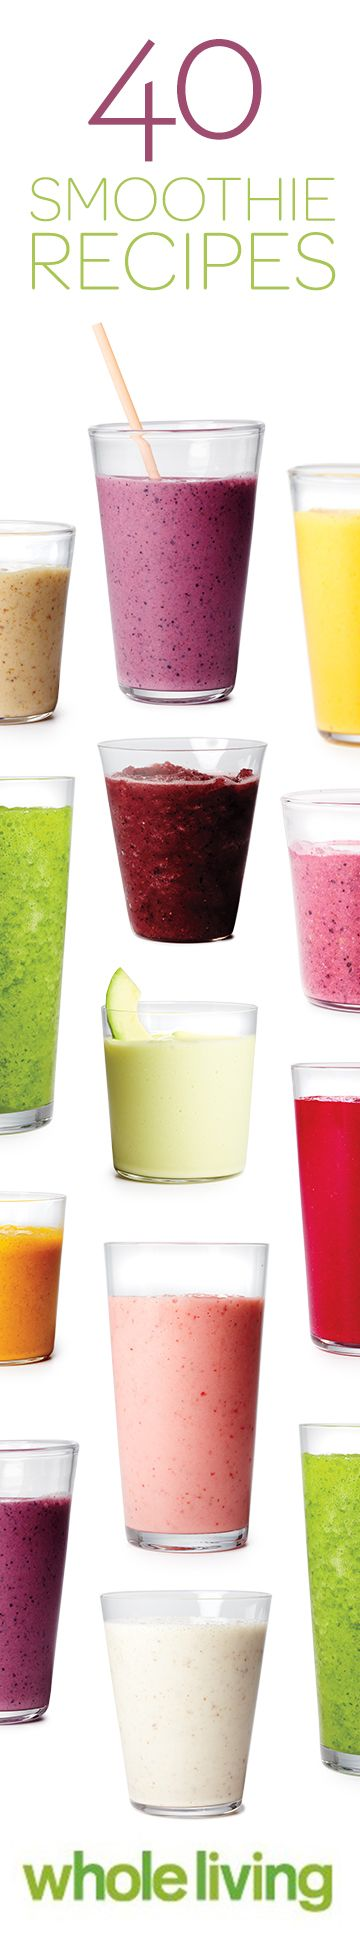 40 smoothie recipes.